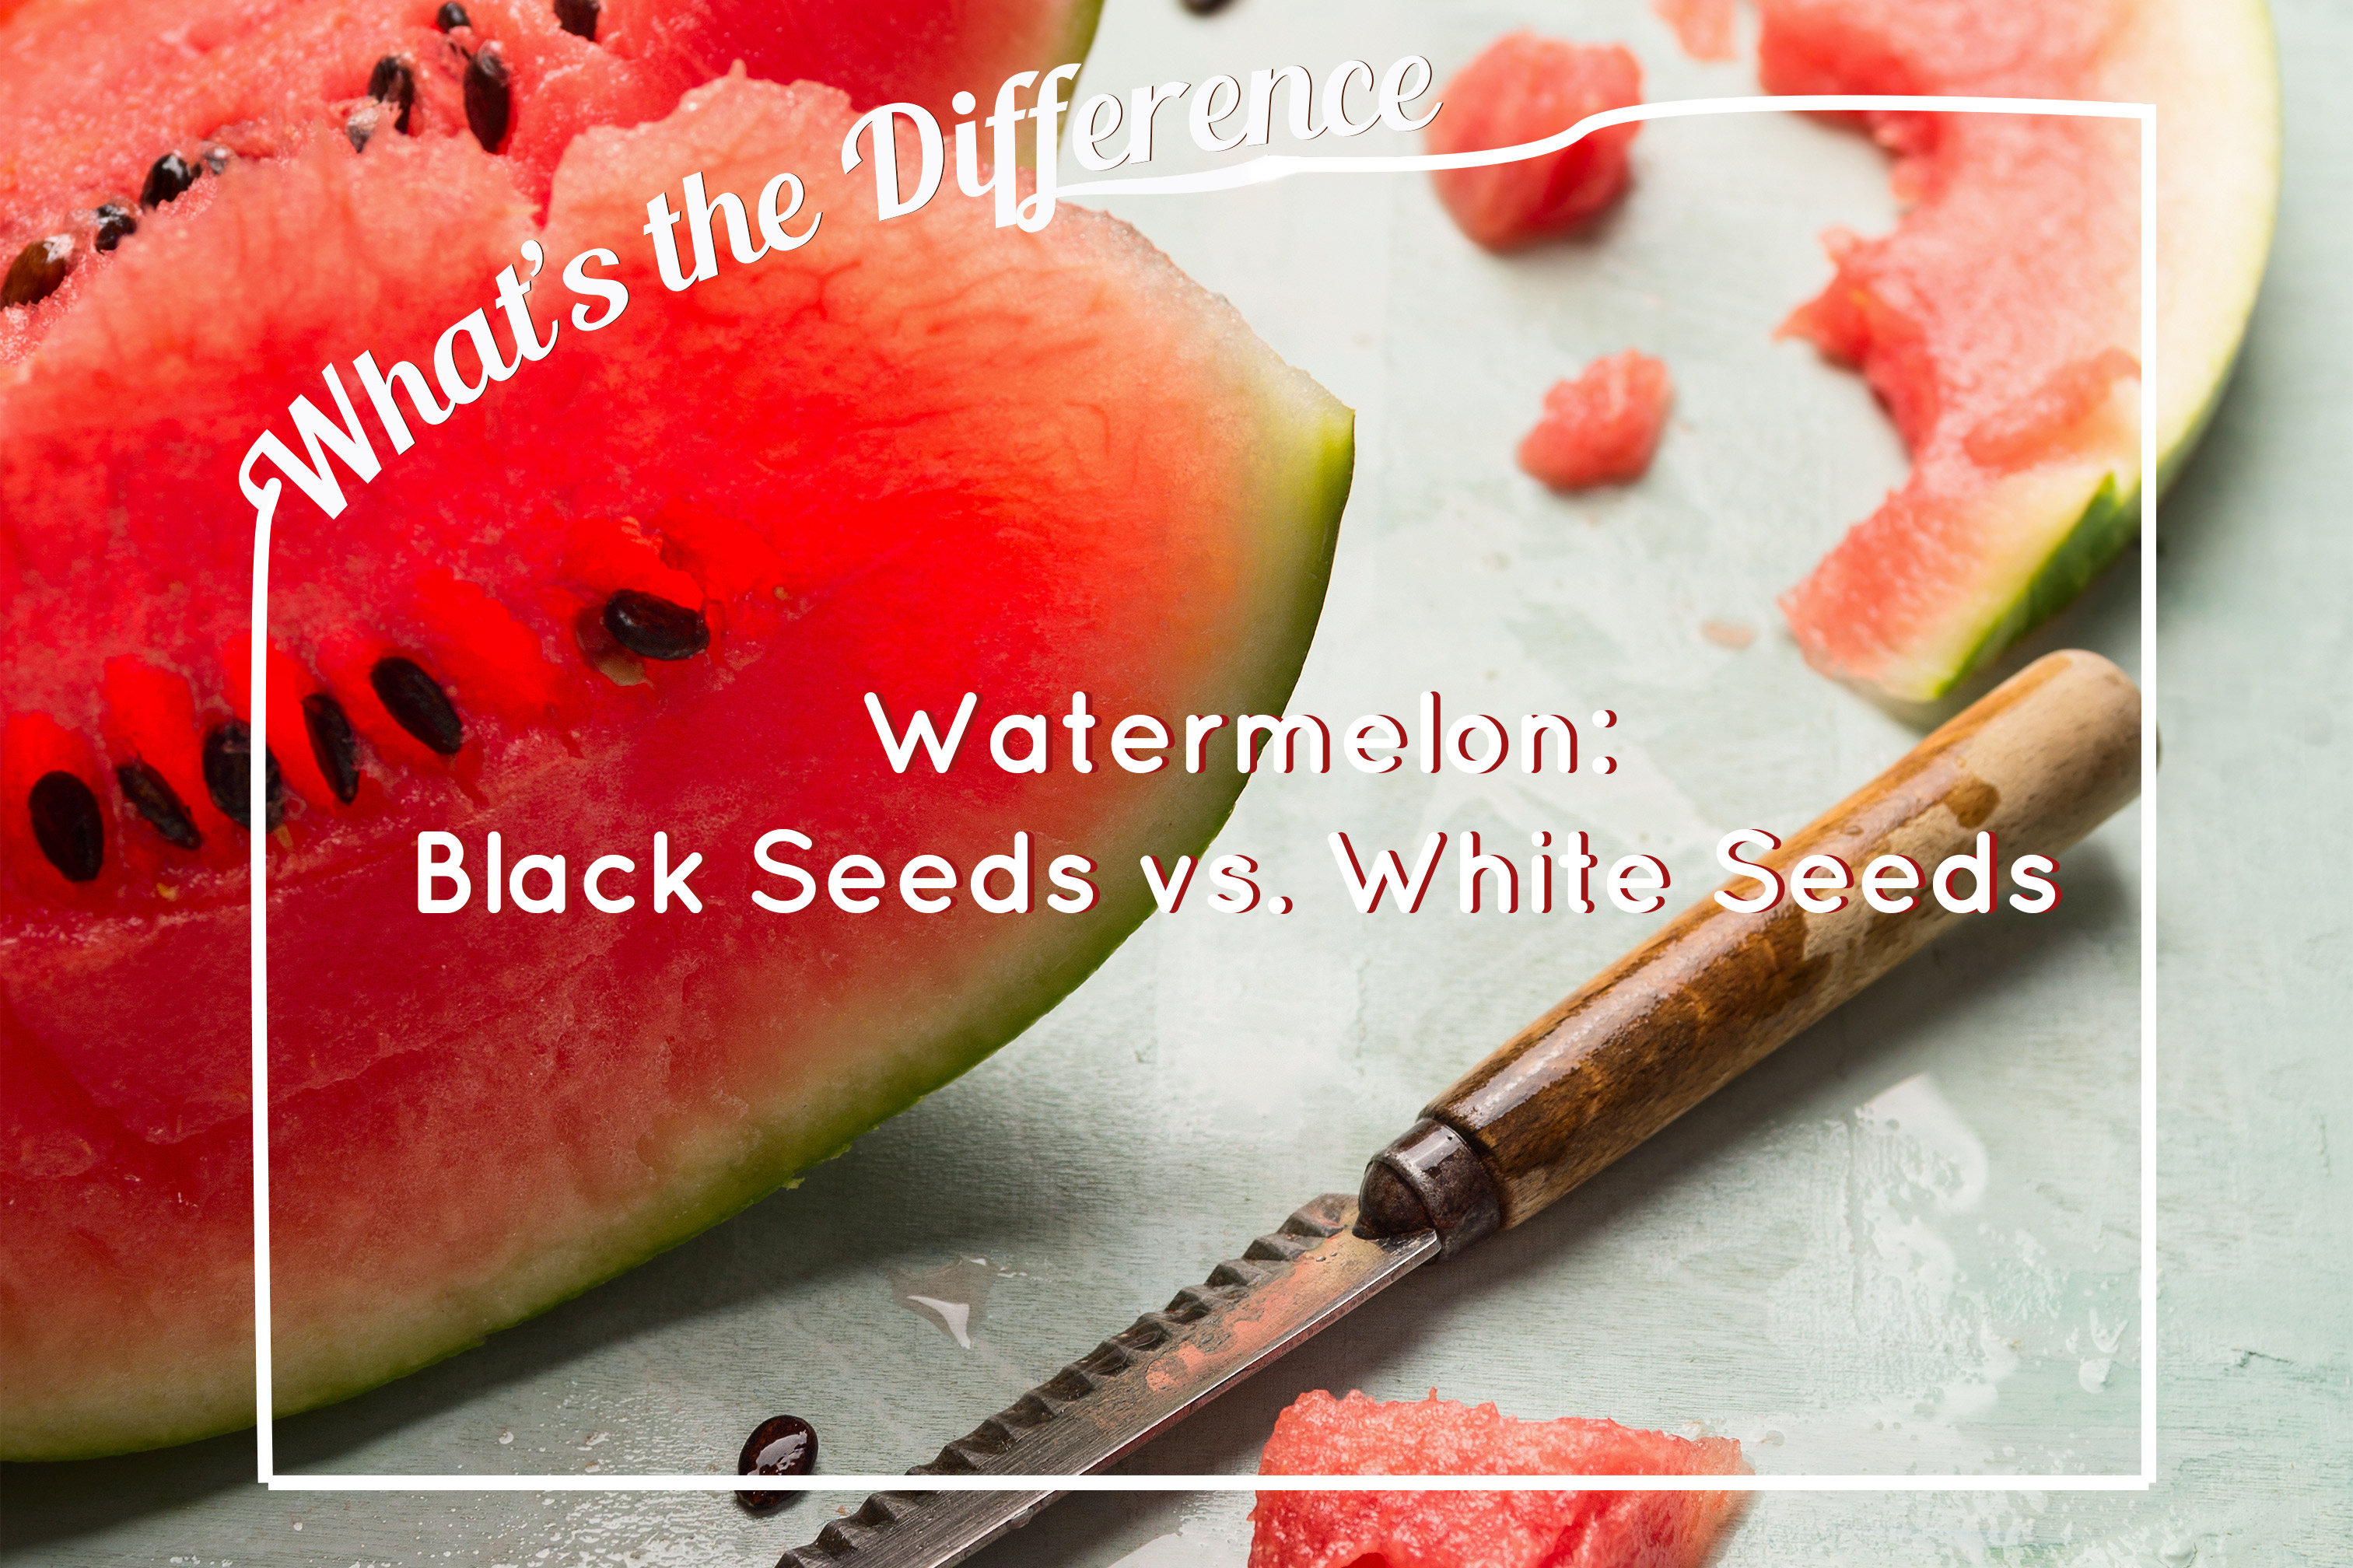 Whats the difference between white and black seeds in